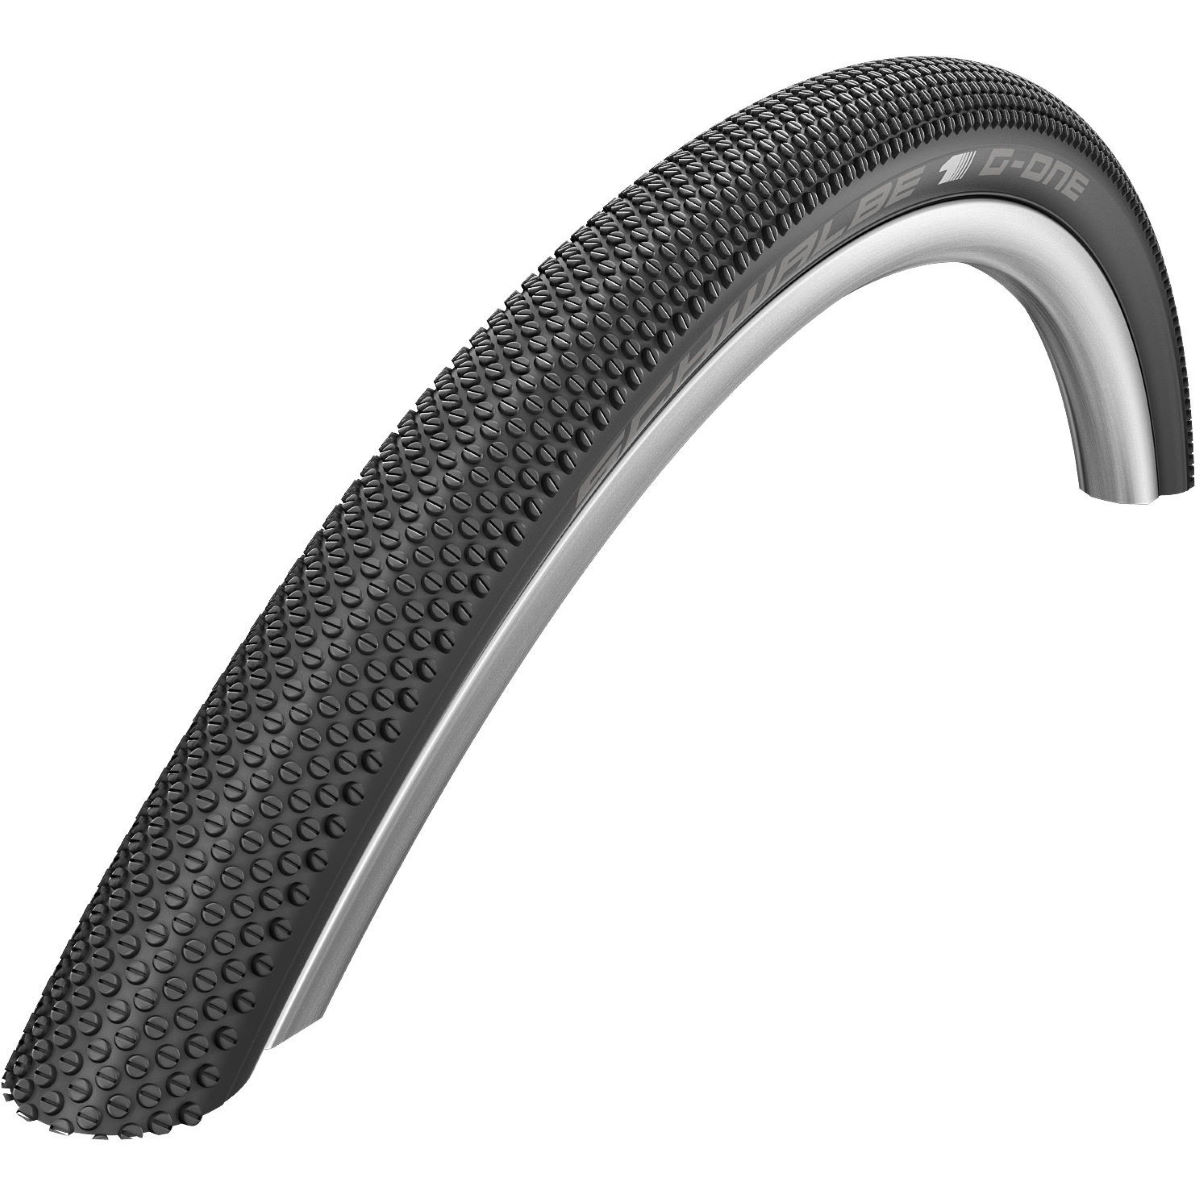 Pneu VTT Schwalbe G-One Speed SnakeSkin TL-Easy (souple) - 2.35' 29'